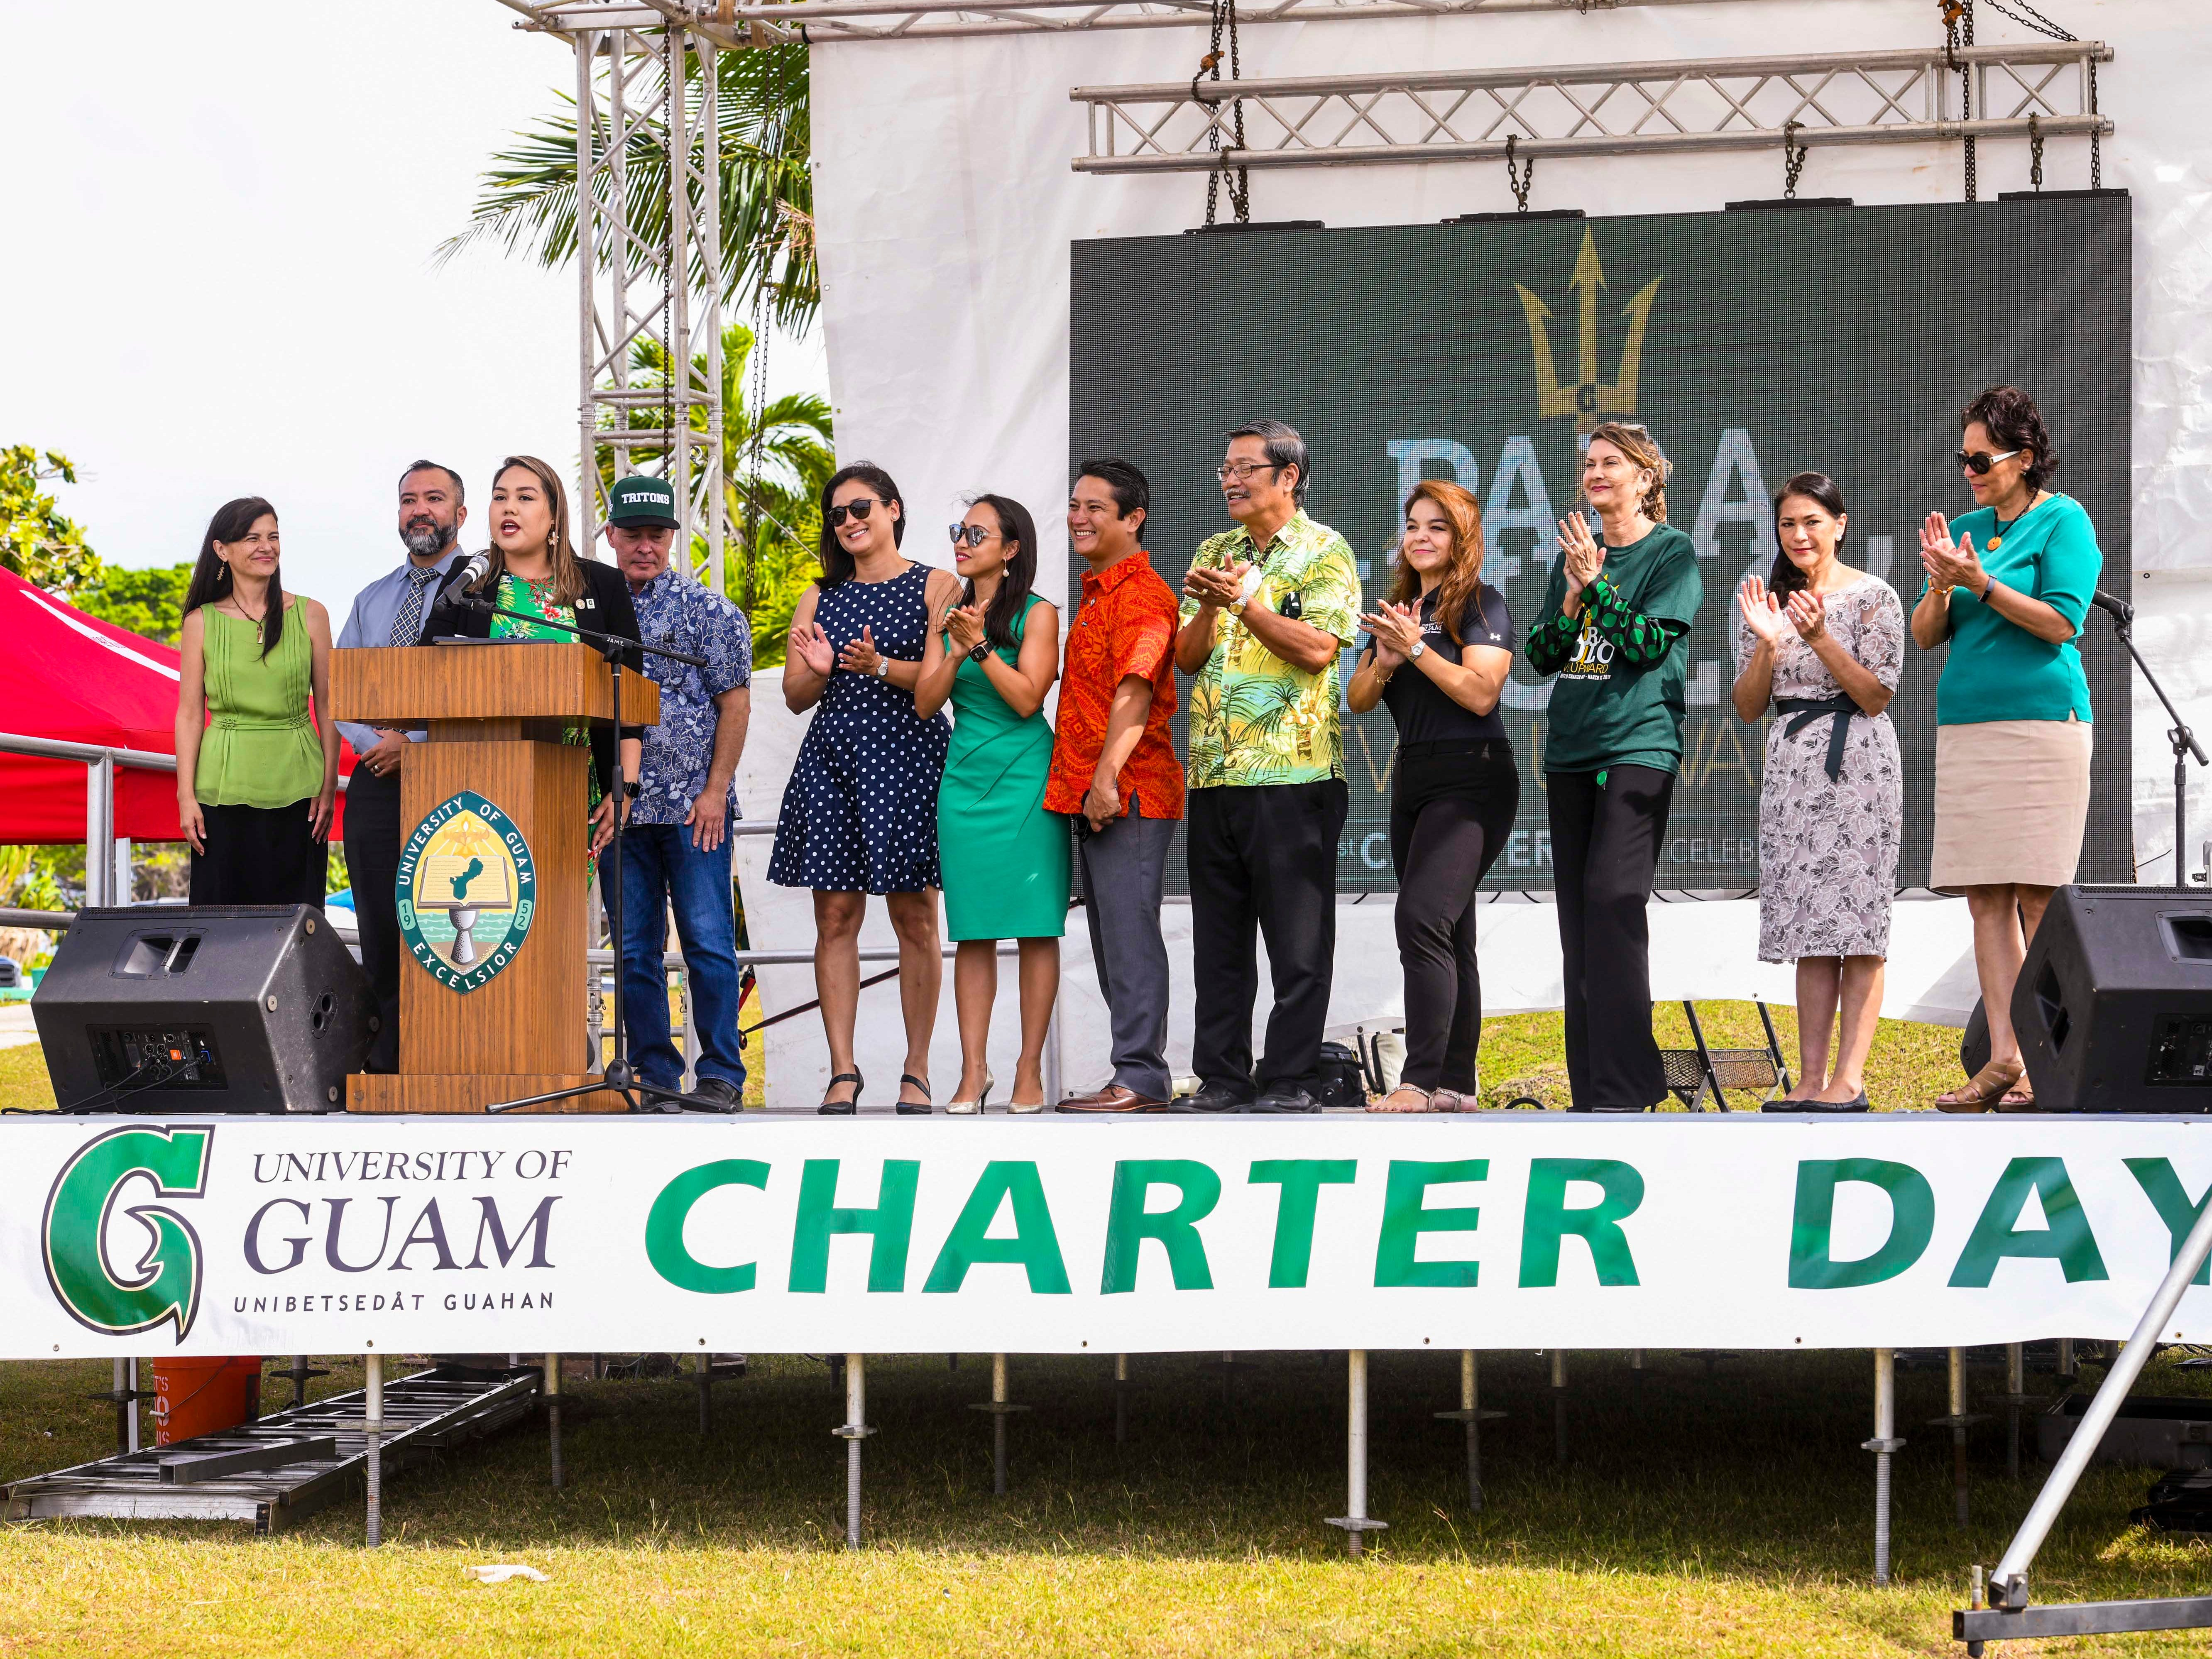 Sen. Amanda Shelton is joined by fellow lawmakers as they prepare to present faculty members with a legislative resolution during the University of Guam 51st Charter Day celebration in Mangilao on Tuesday, March 12, 2019.